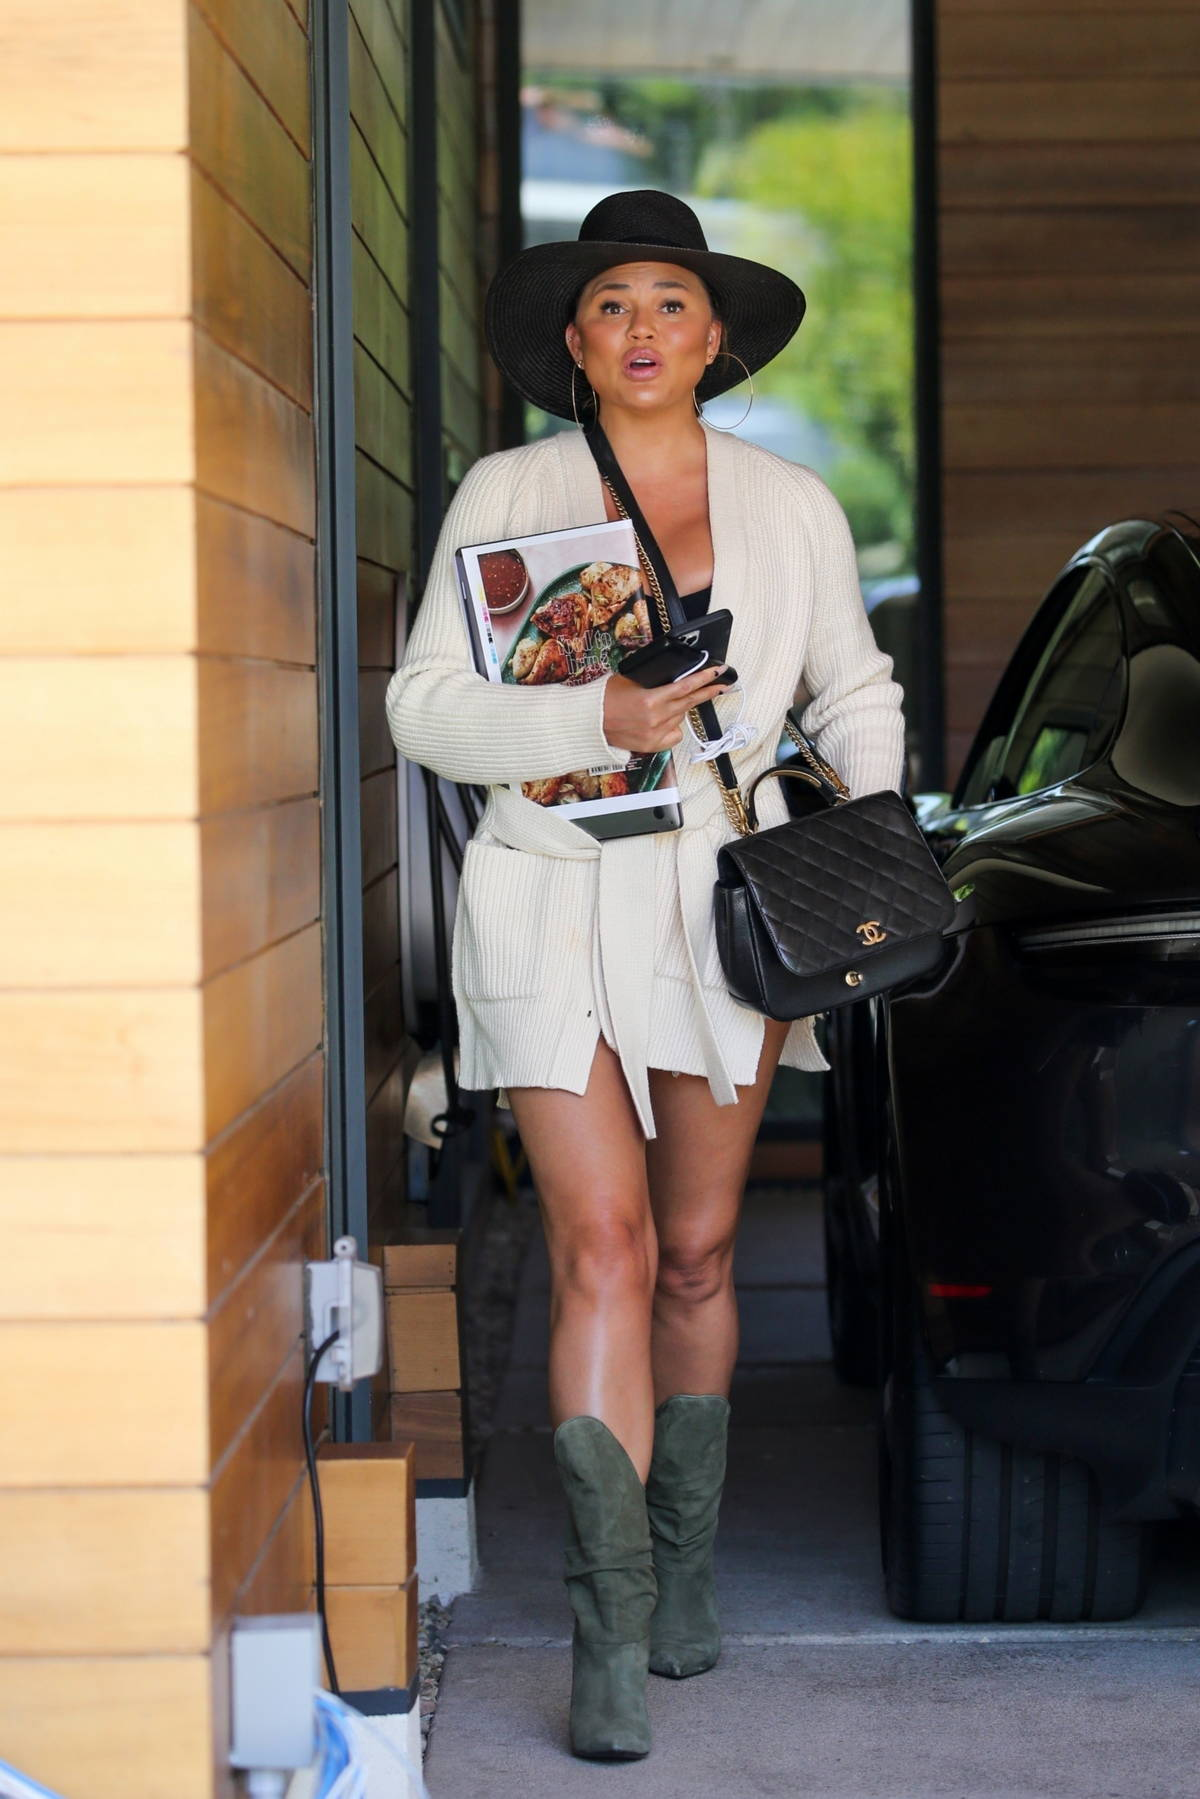 Chrissy Teigen flaunts her legs in denim shorts as she as she arrives at her office in Los Angeles